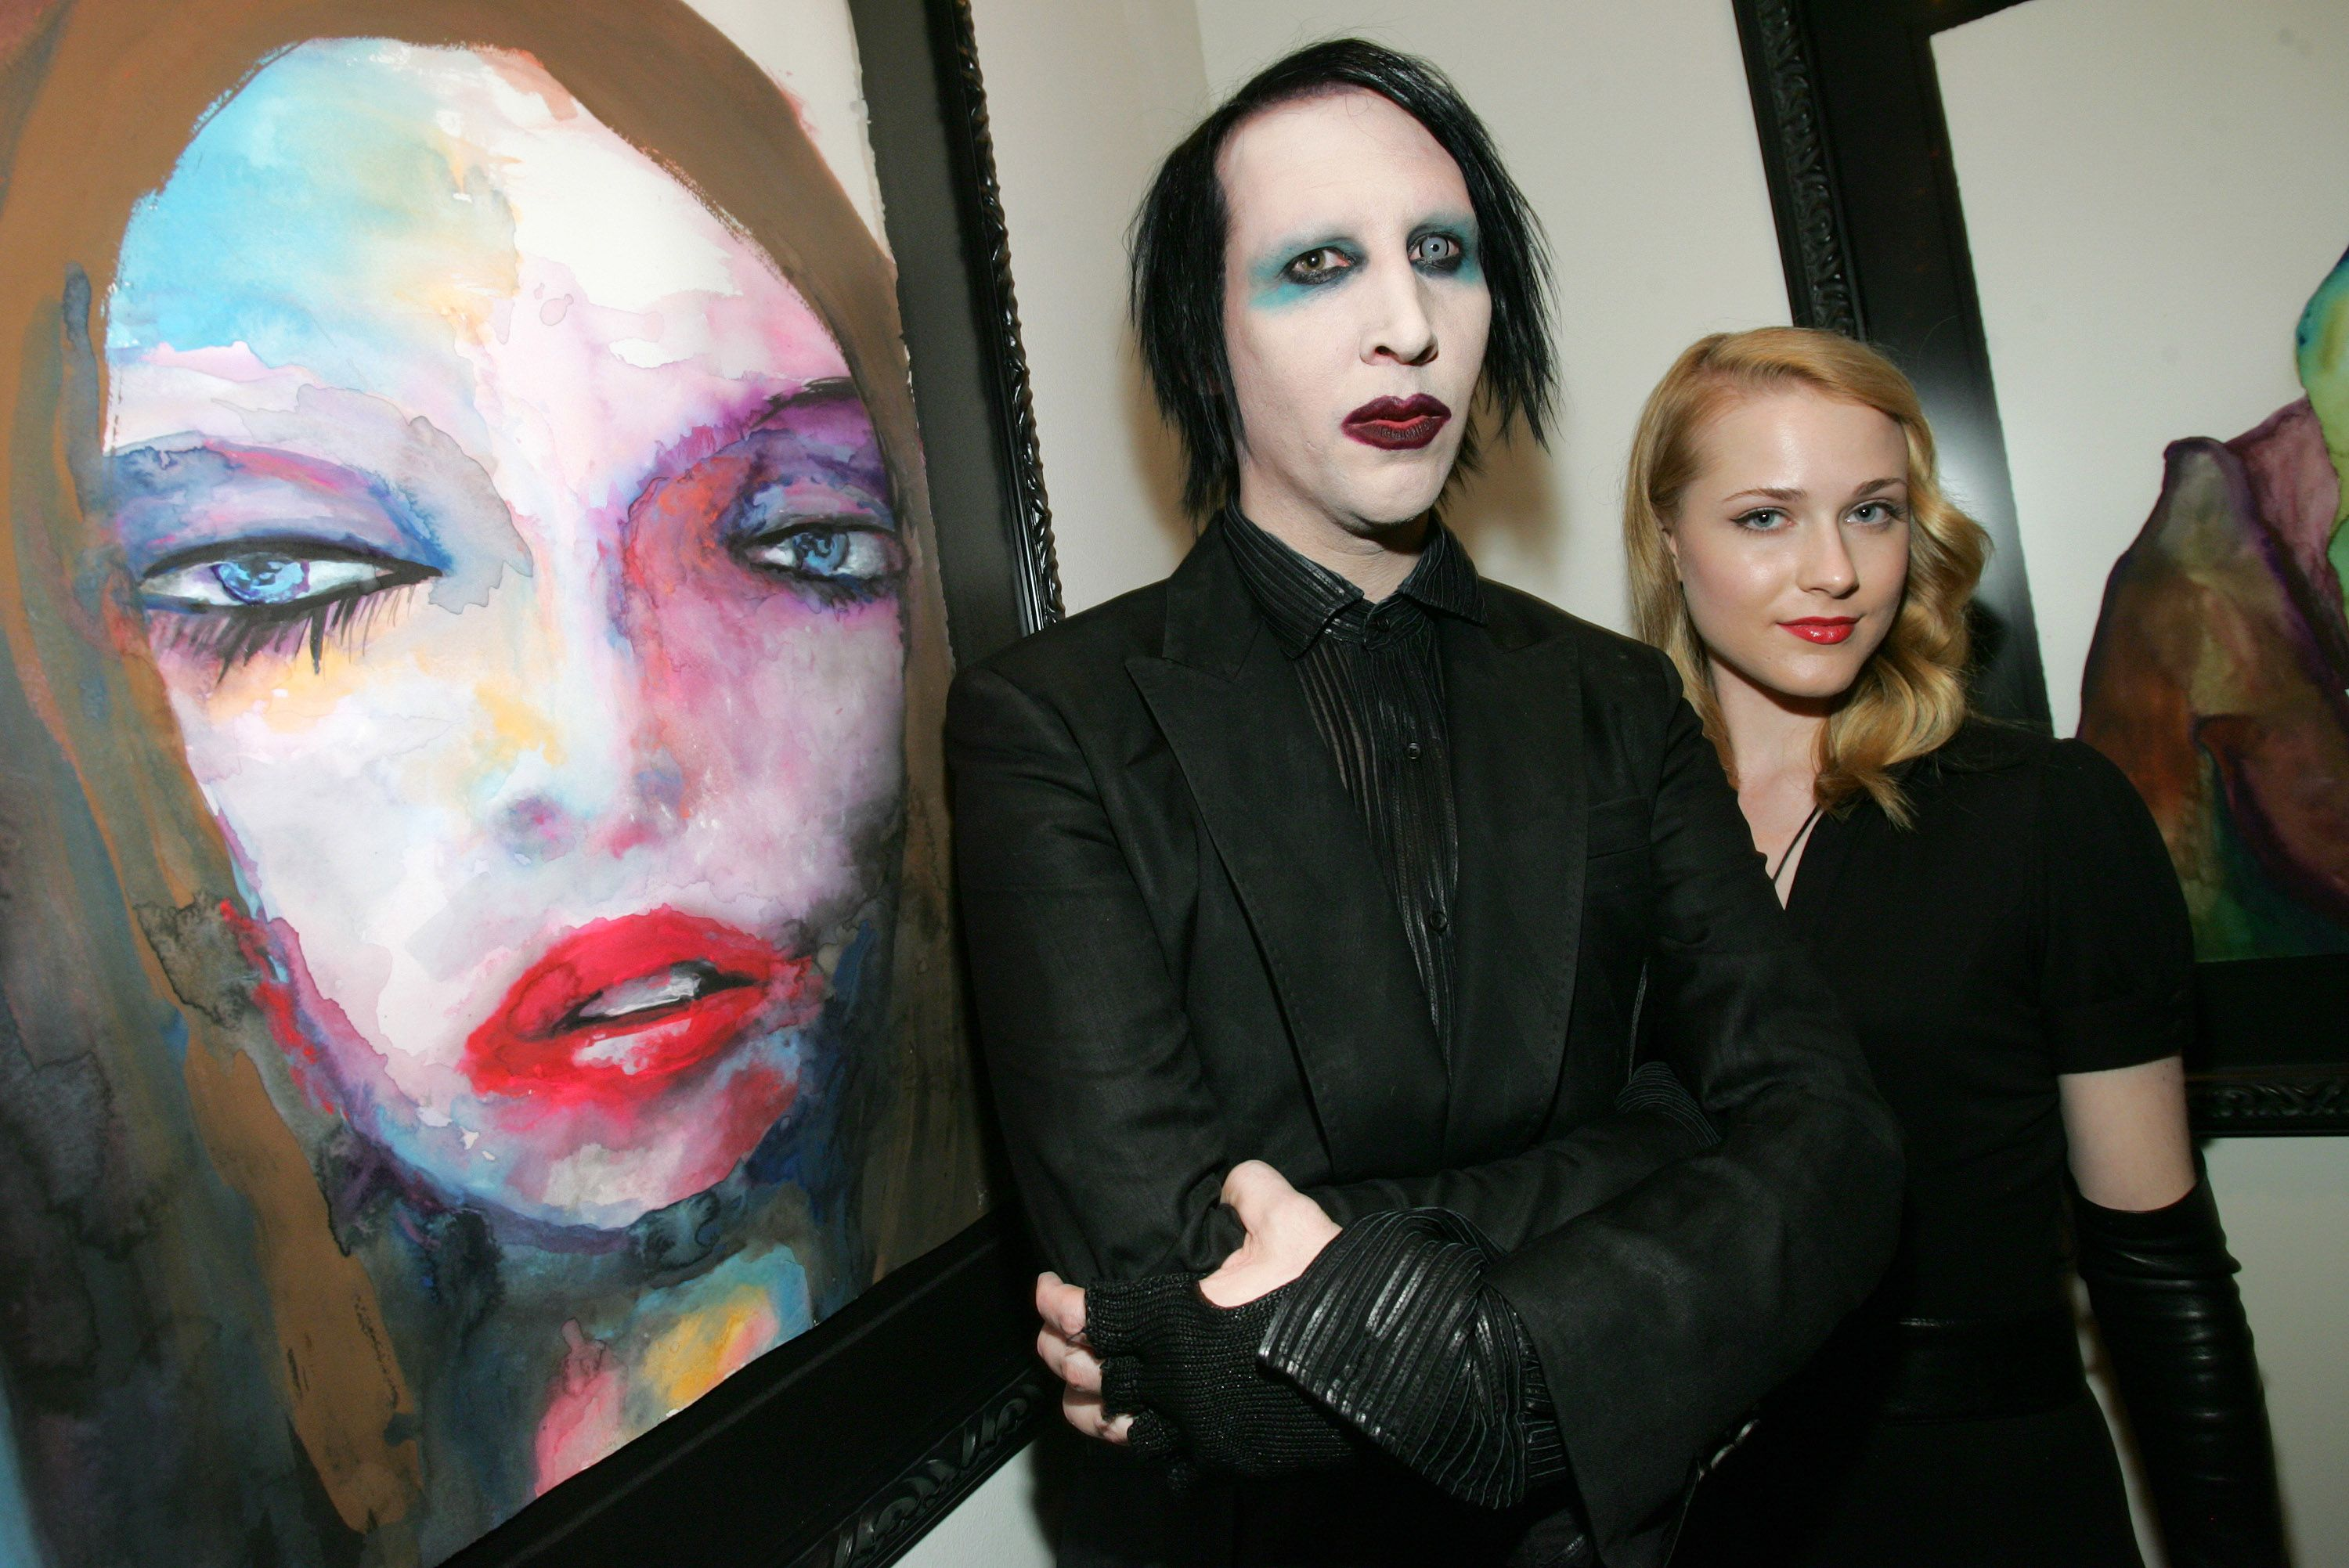 Marilyn Manson and actress Evan Rachel Wood at an art exhibition | Source: Getty Images